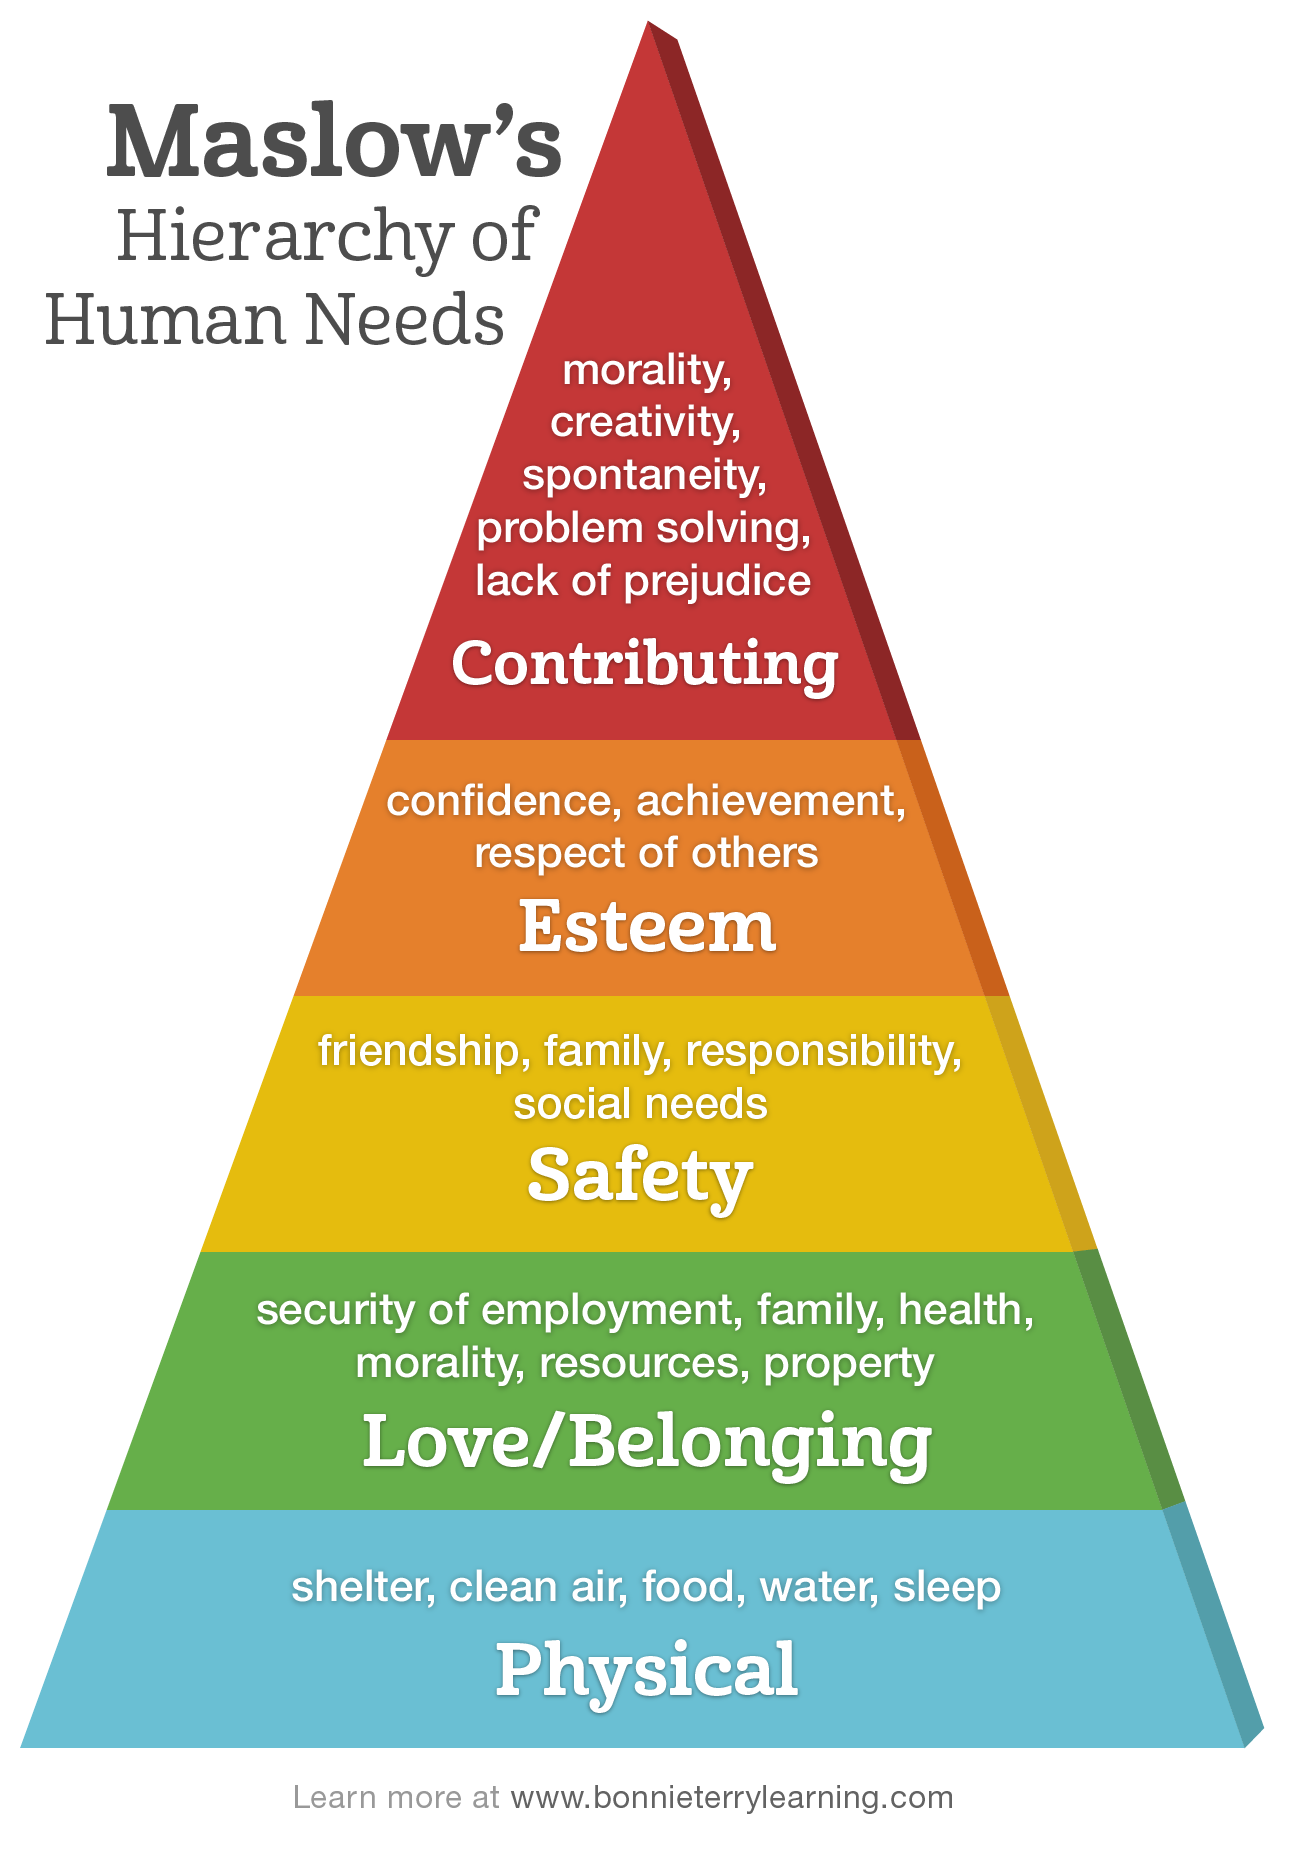 an examination of the hierarchy of needs by abraham maslow Here are the five levels in maslow's hierarchy of needs, and how you can apply them to the workplace to engage your employees maslow's hierarchy of needs is a psychology theory posed by.